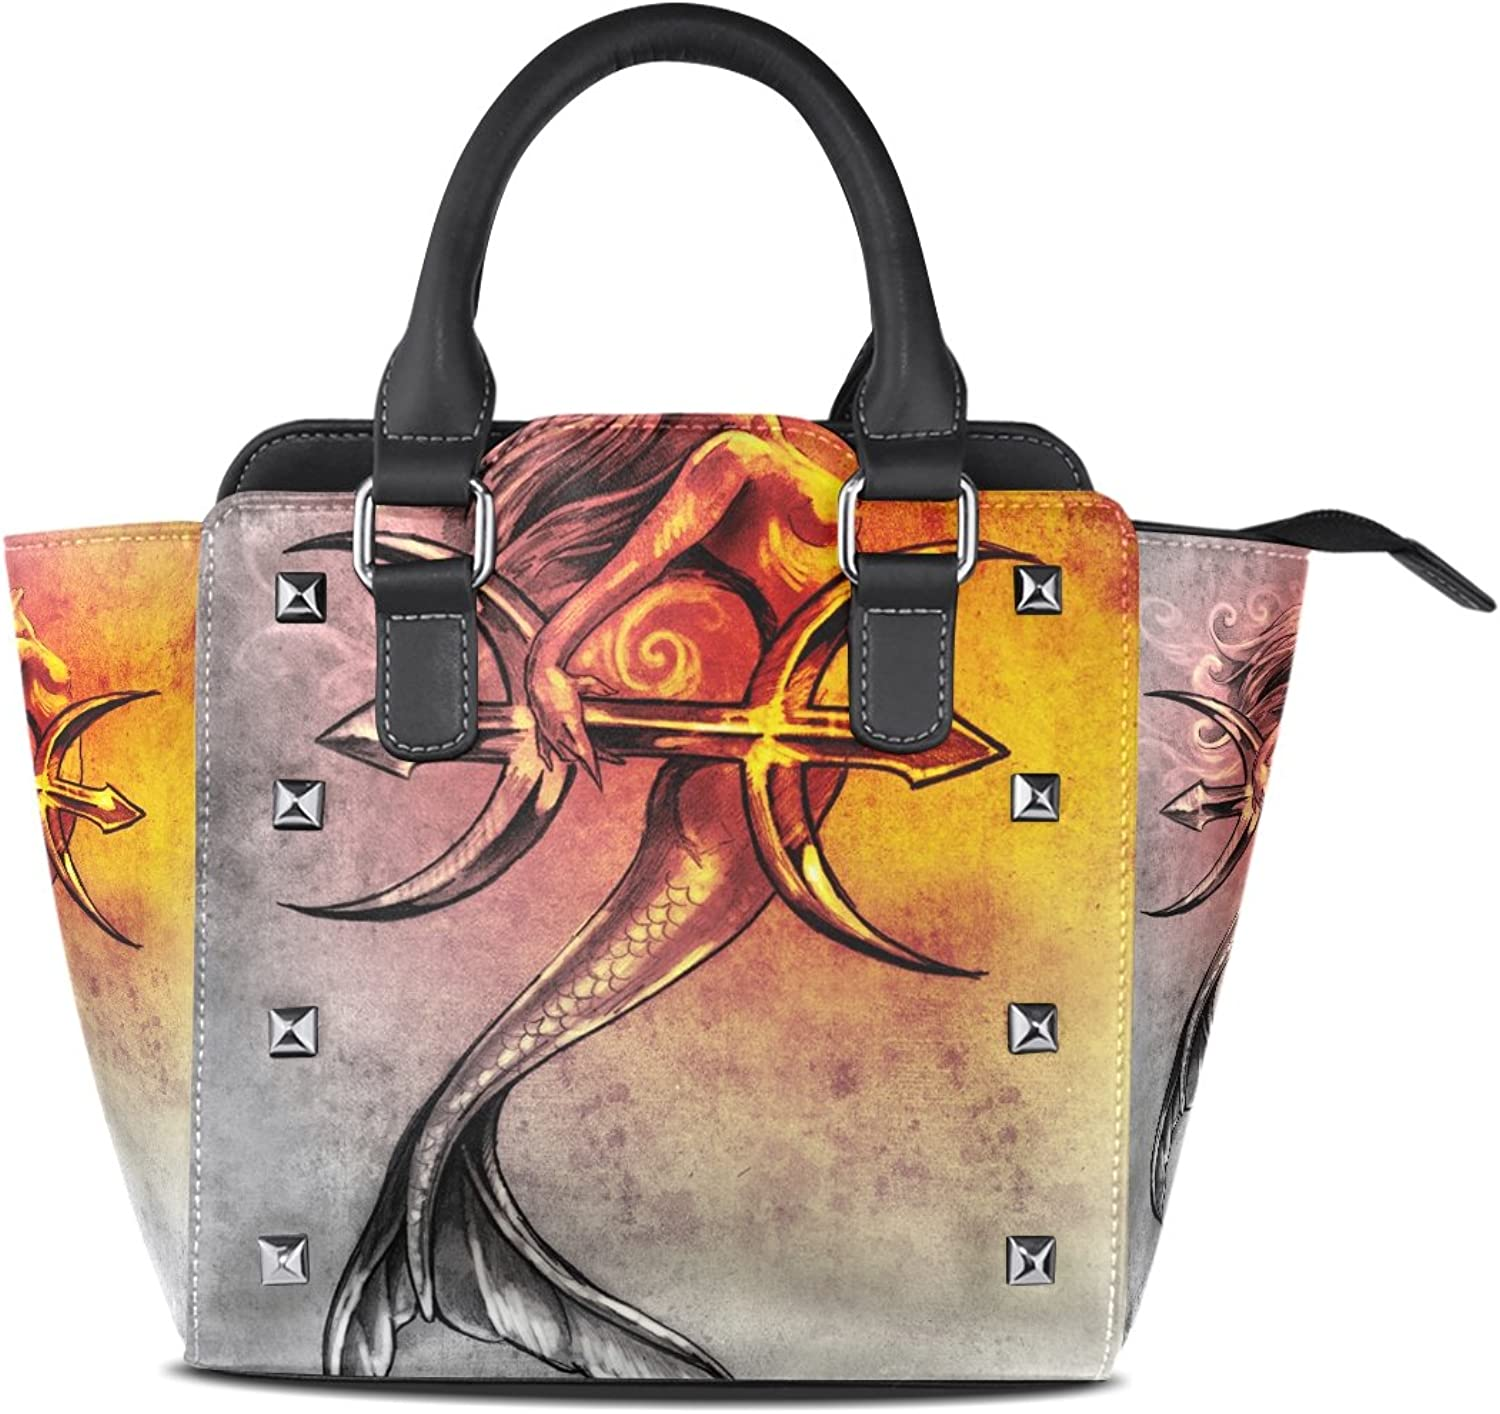 Sunlome Mermaid Pisces Vintage Print Handbags Women's PU Leather Top-Handle Shoulder Bags